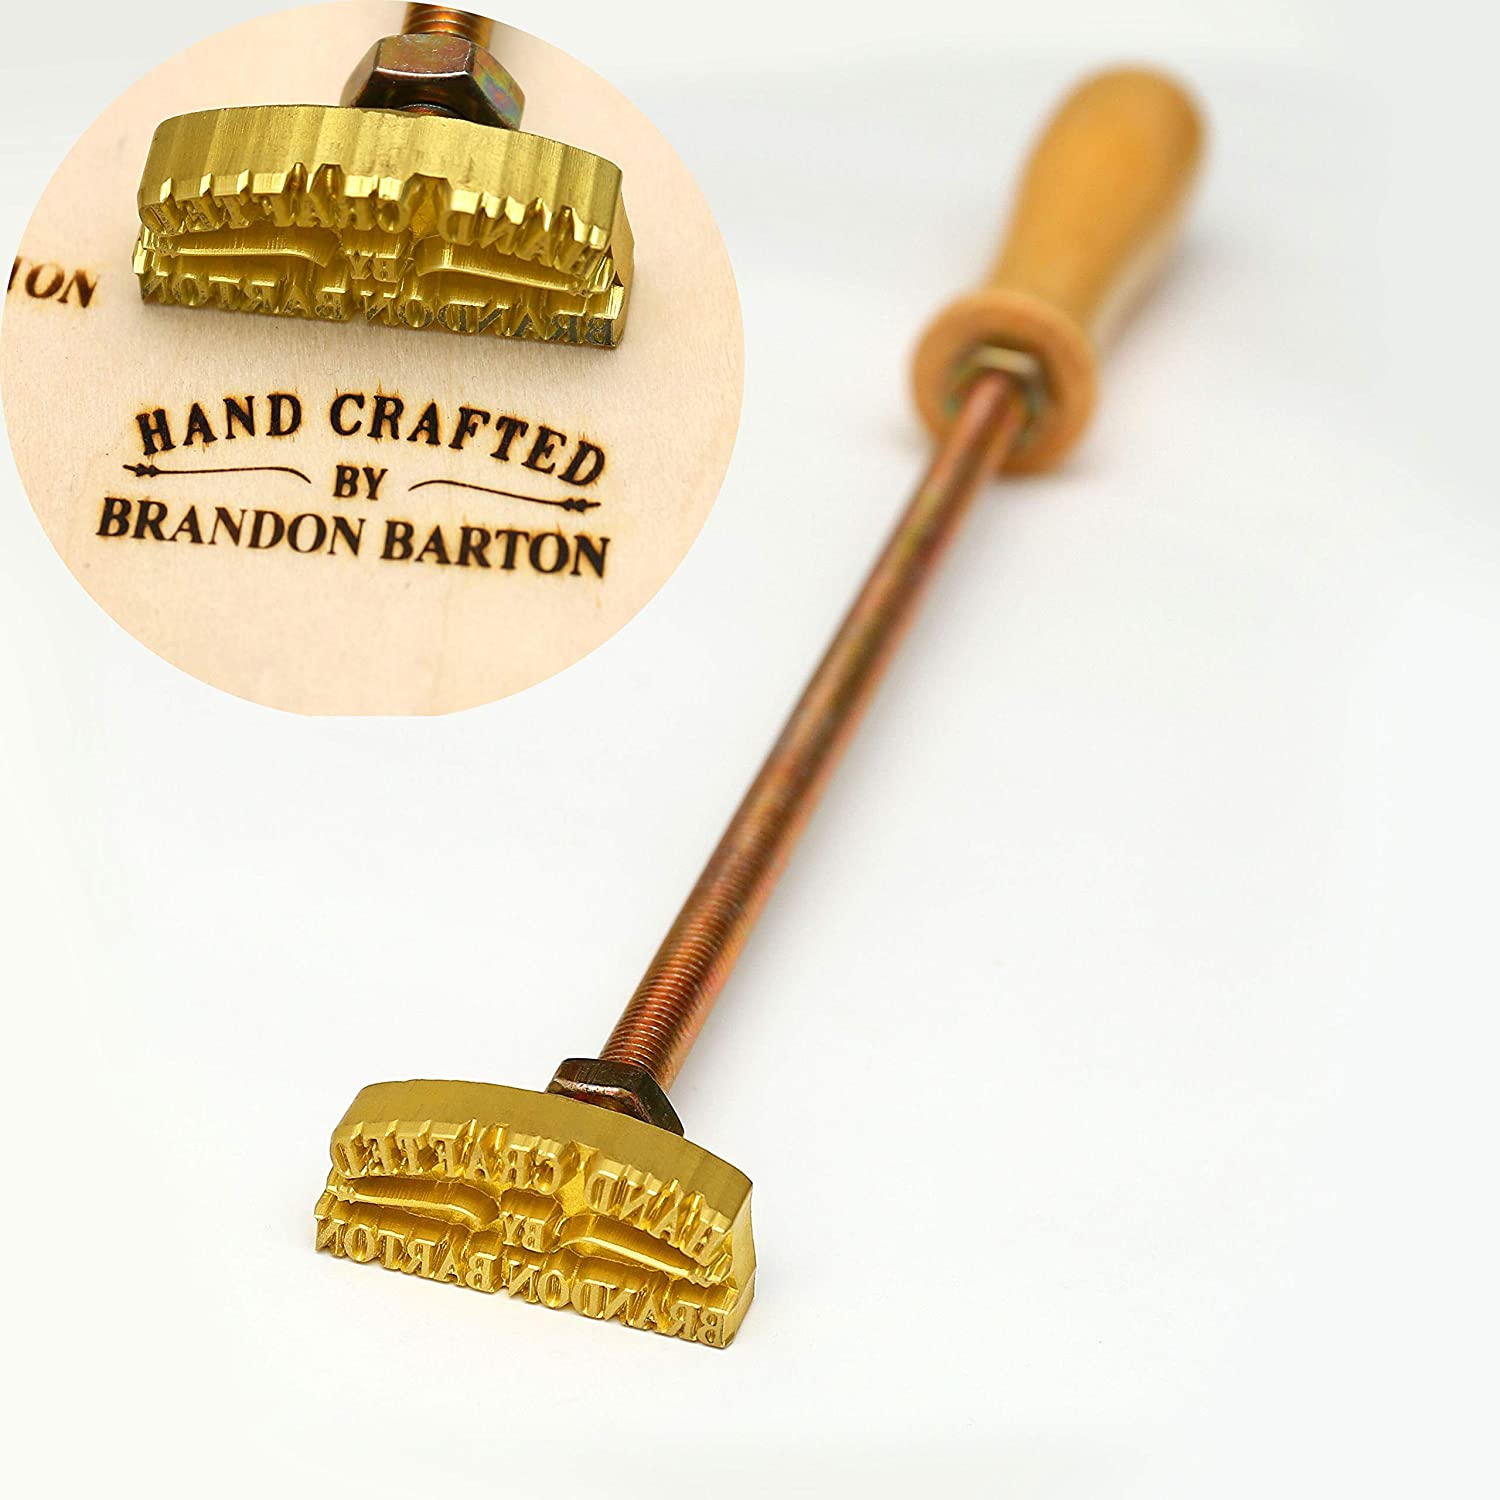 Custom Logo Wood Branding Iron,Durable Leather Branding Iron Stamp,Wood Branding Iron//Wedding Gift,Handcrafted by Design 3x3